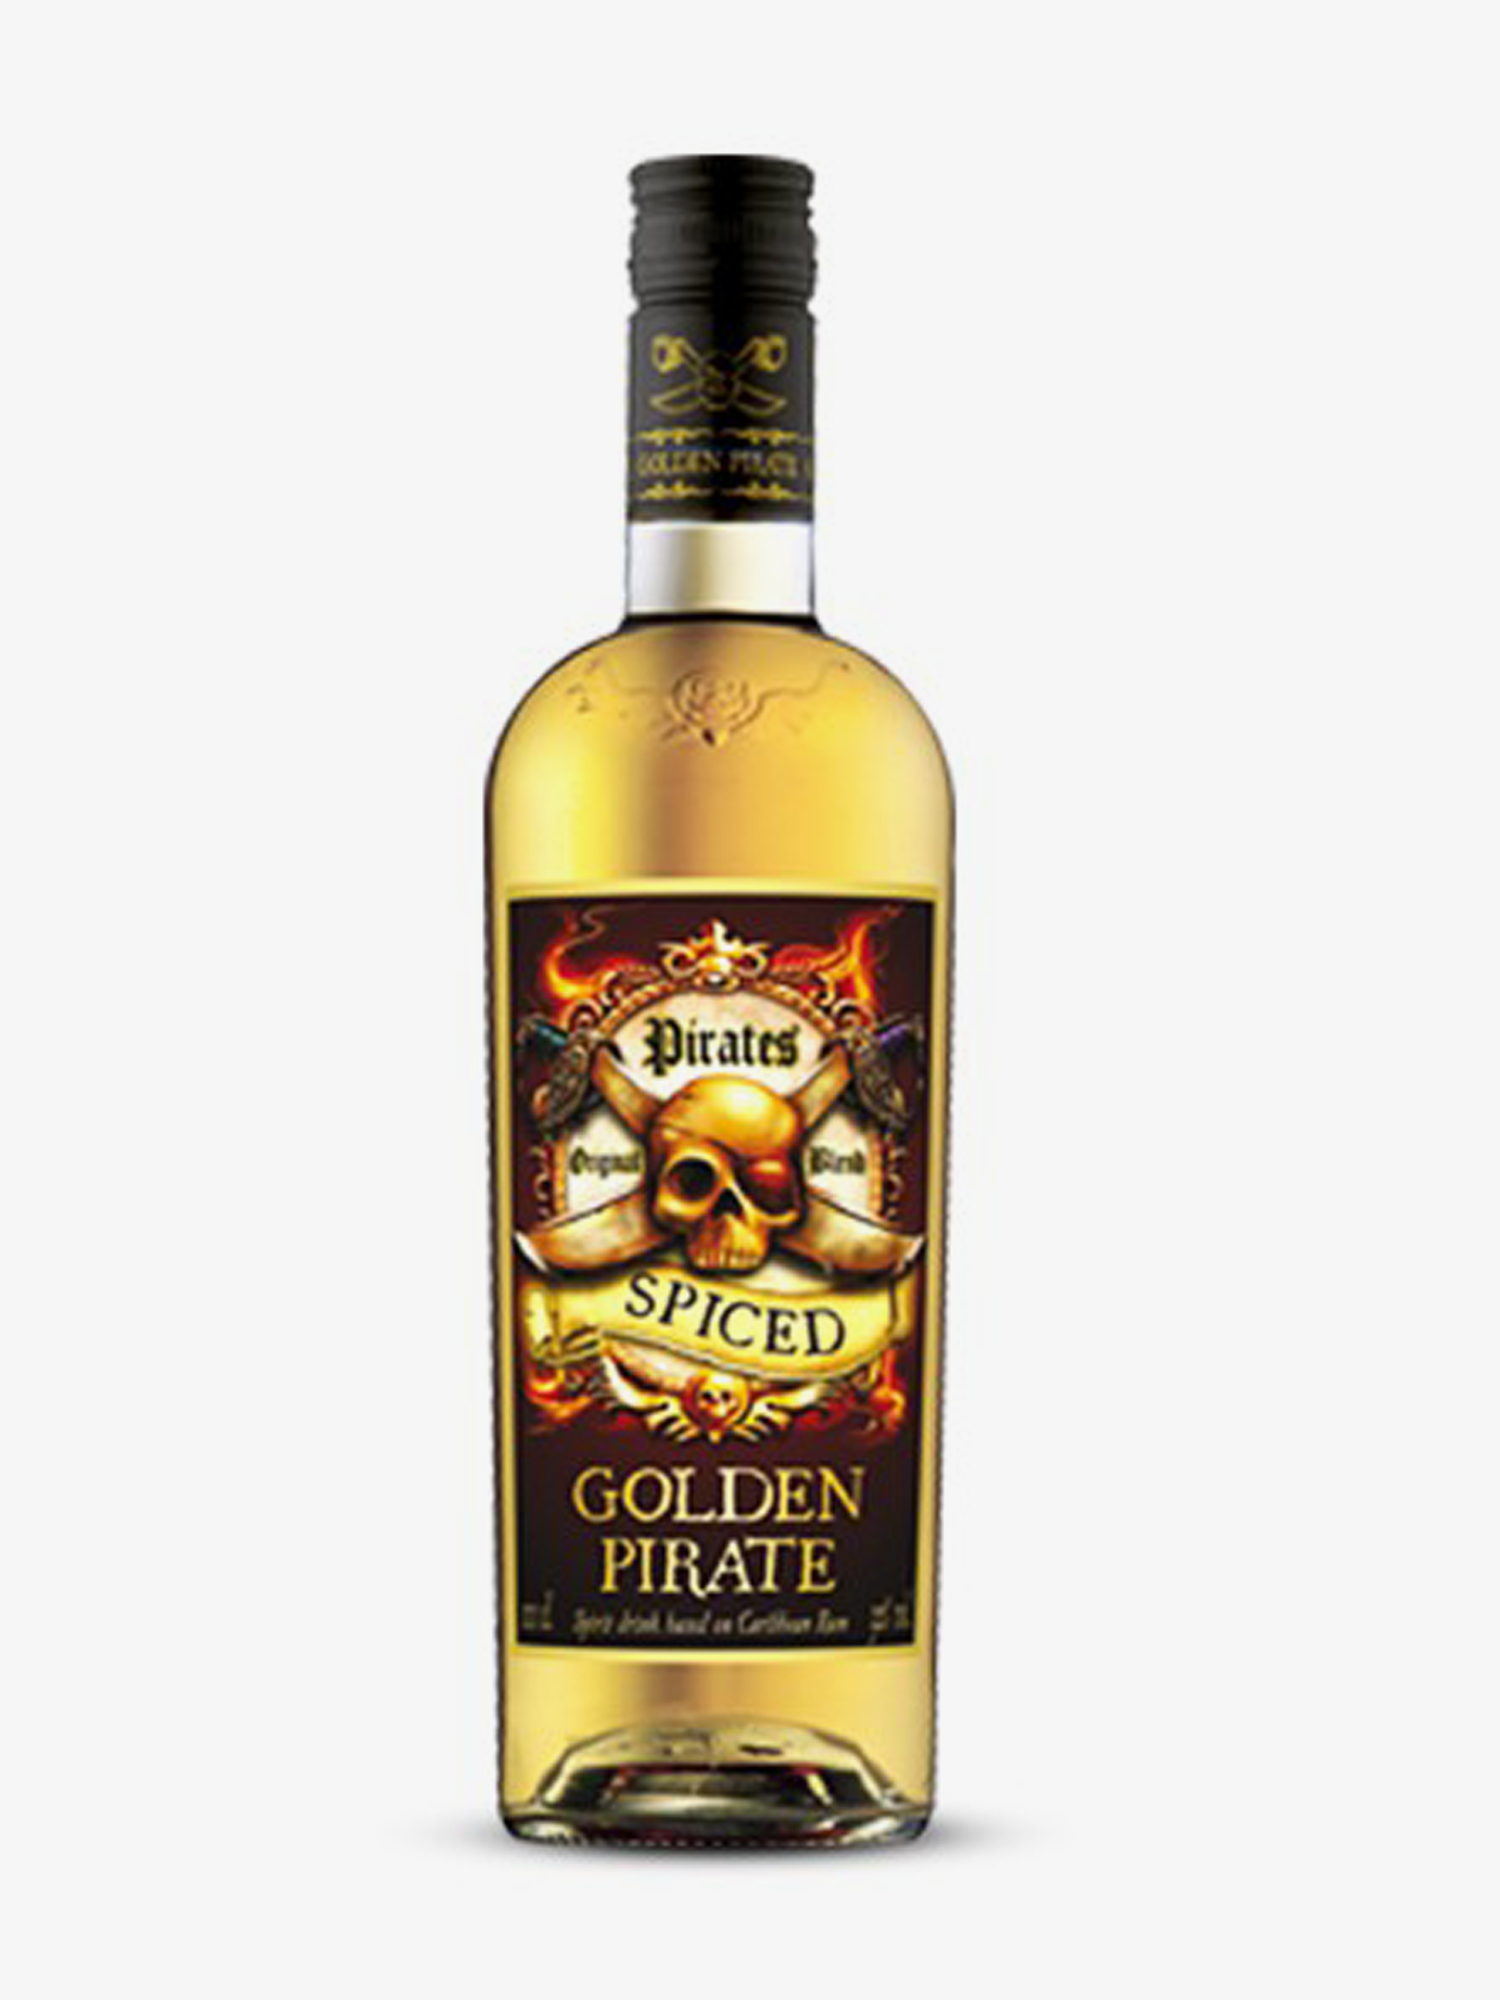 Golden Pirate Rum Spiced